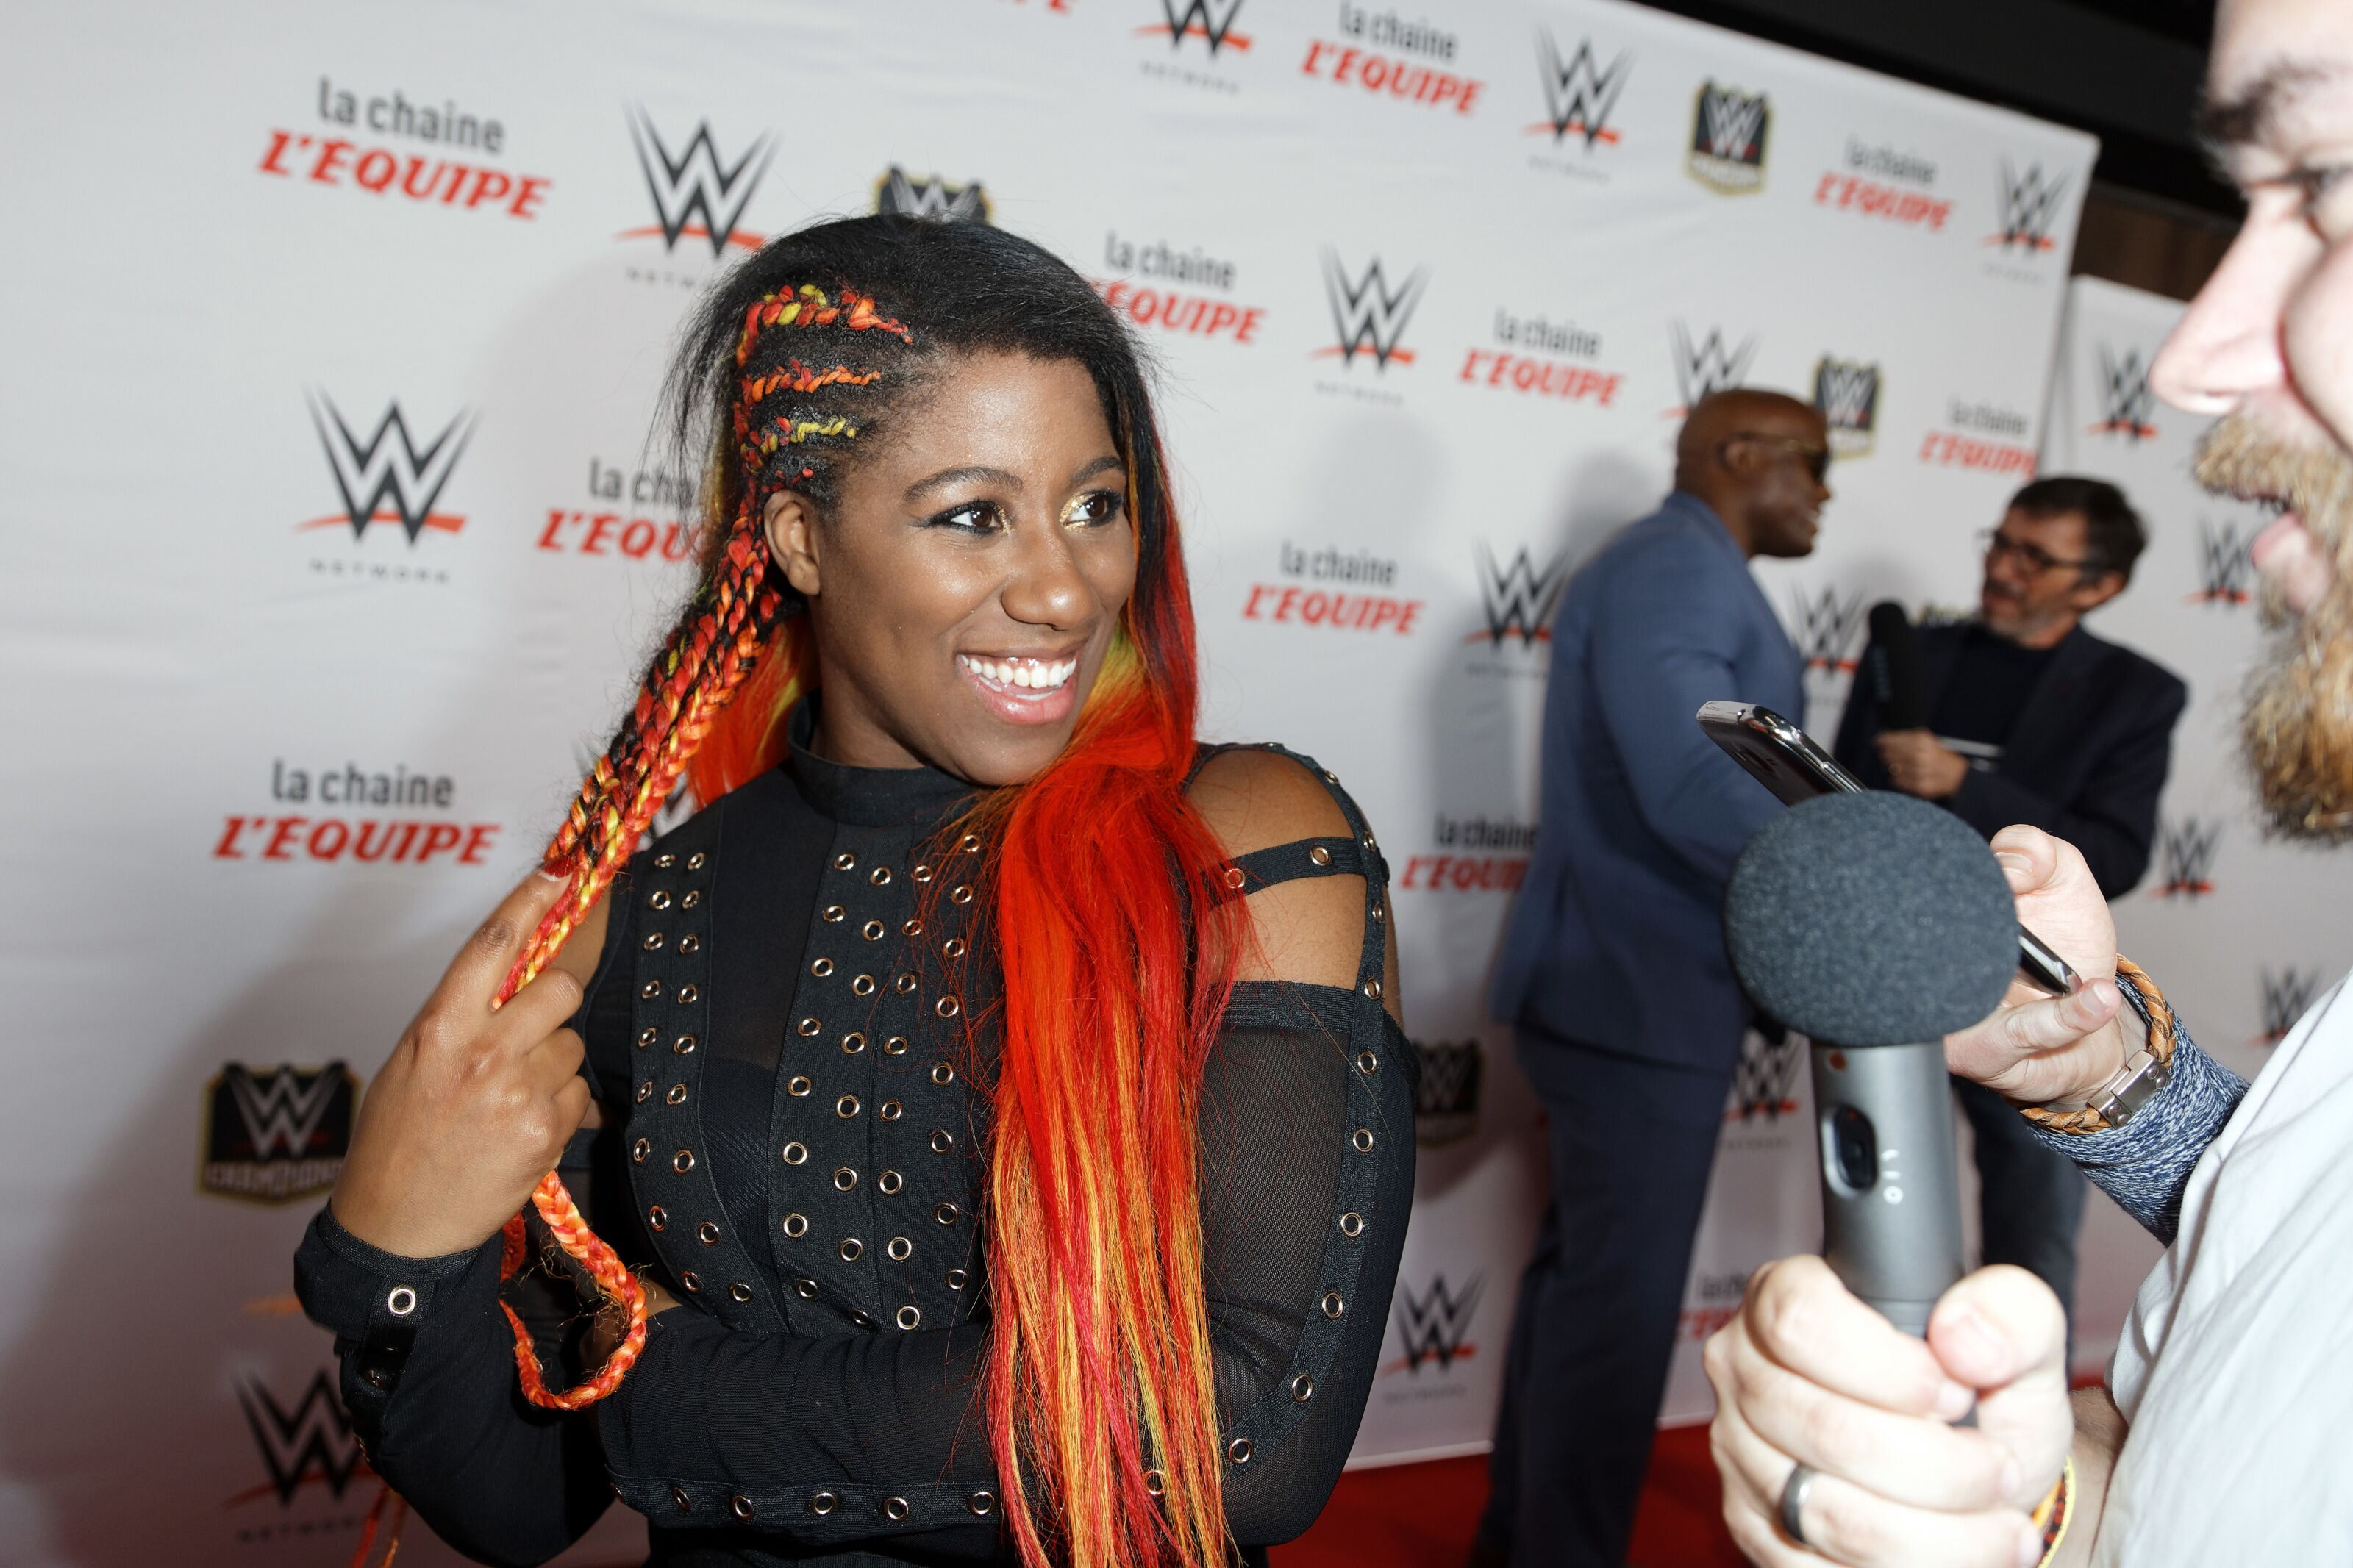 WWE: Why Ember Moon vs. Bayley should be a No. 1 contender's match